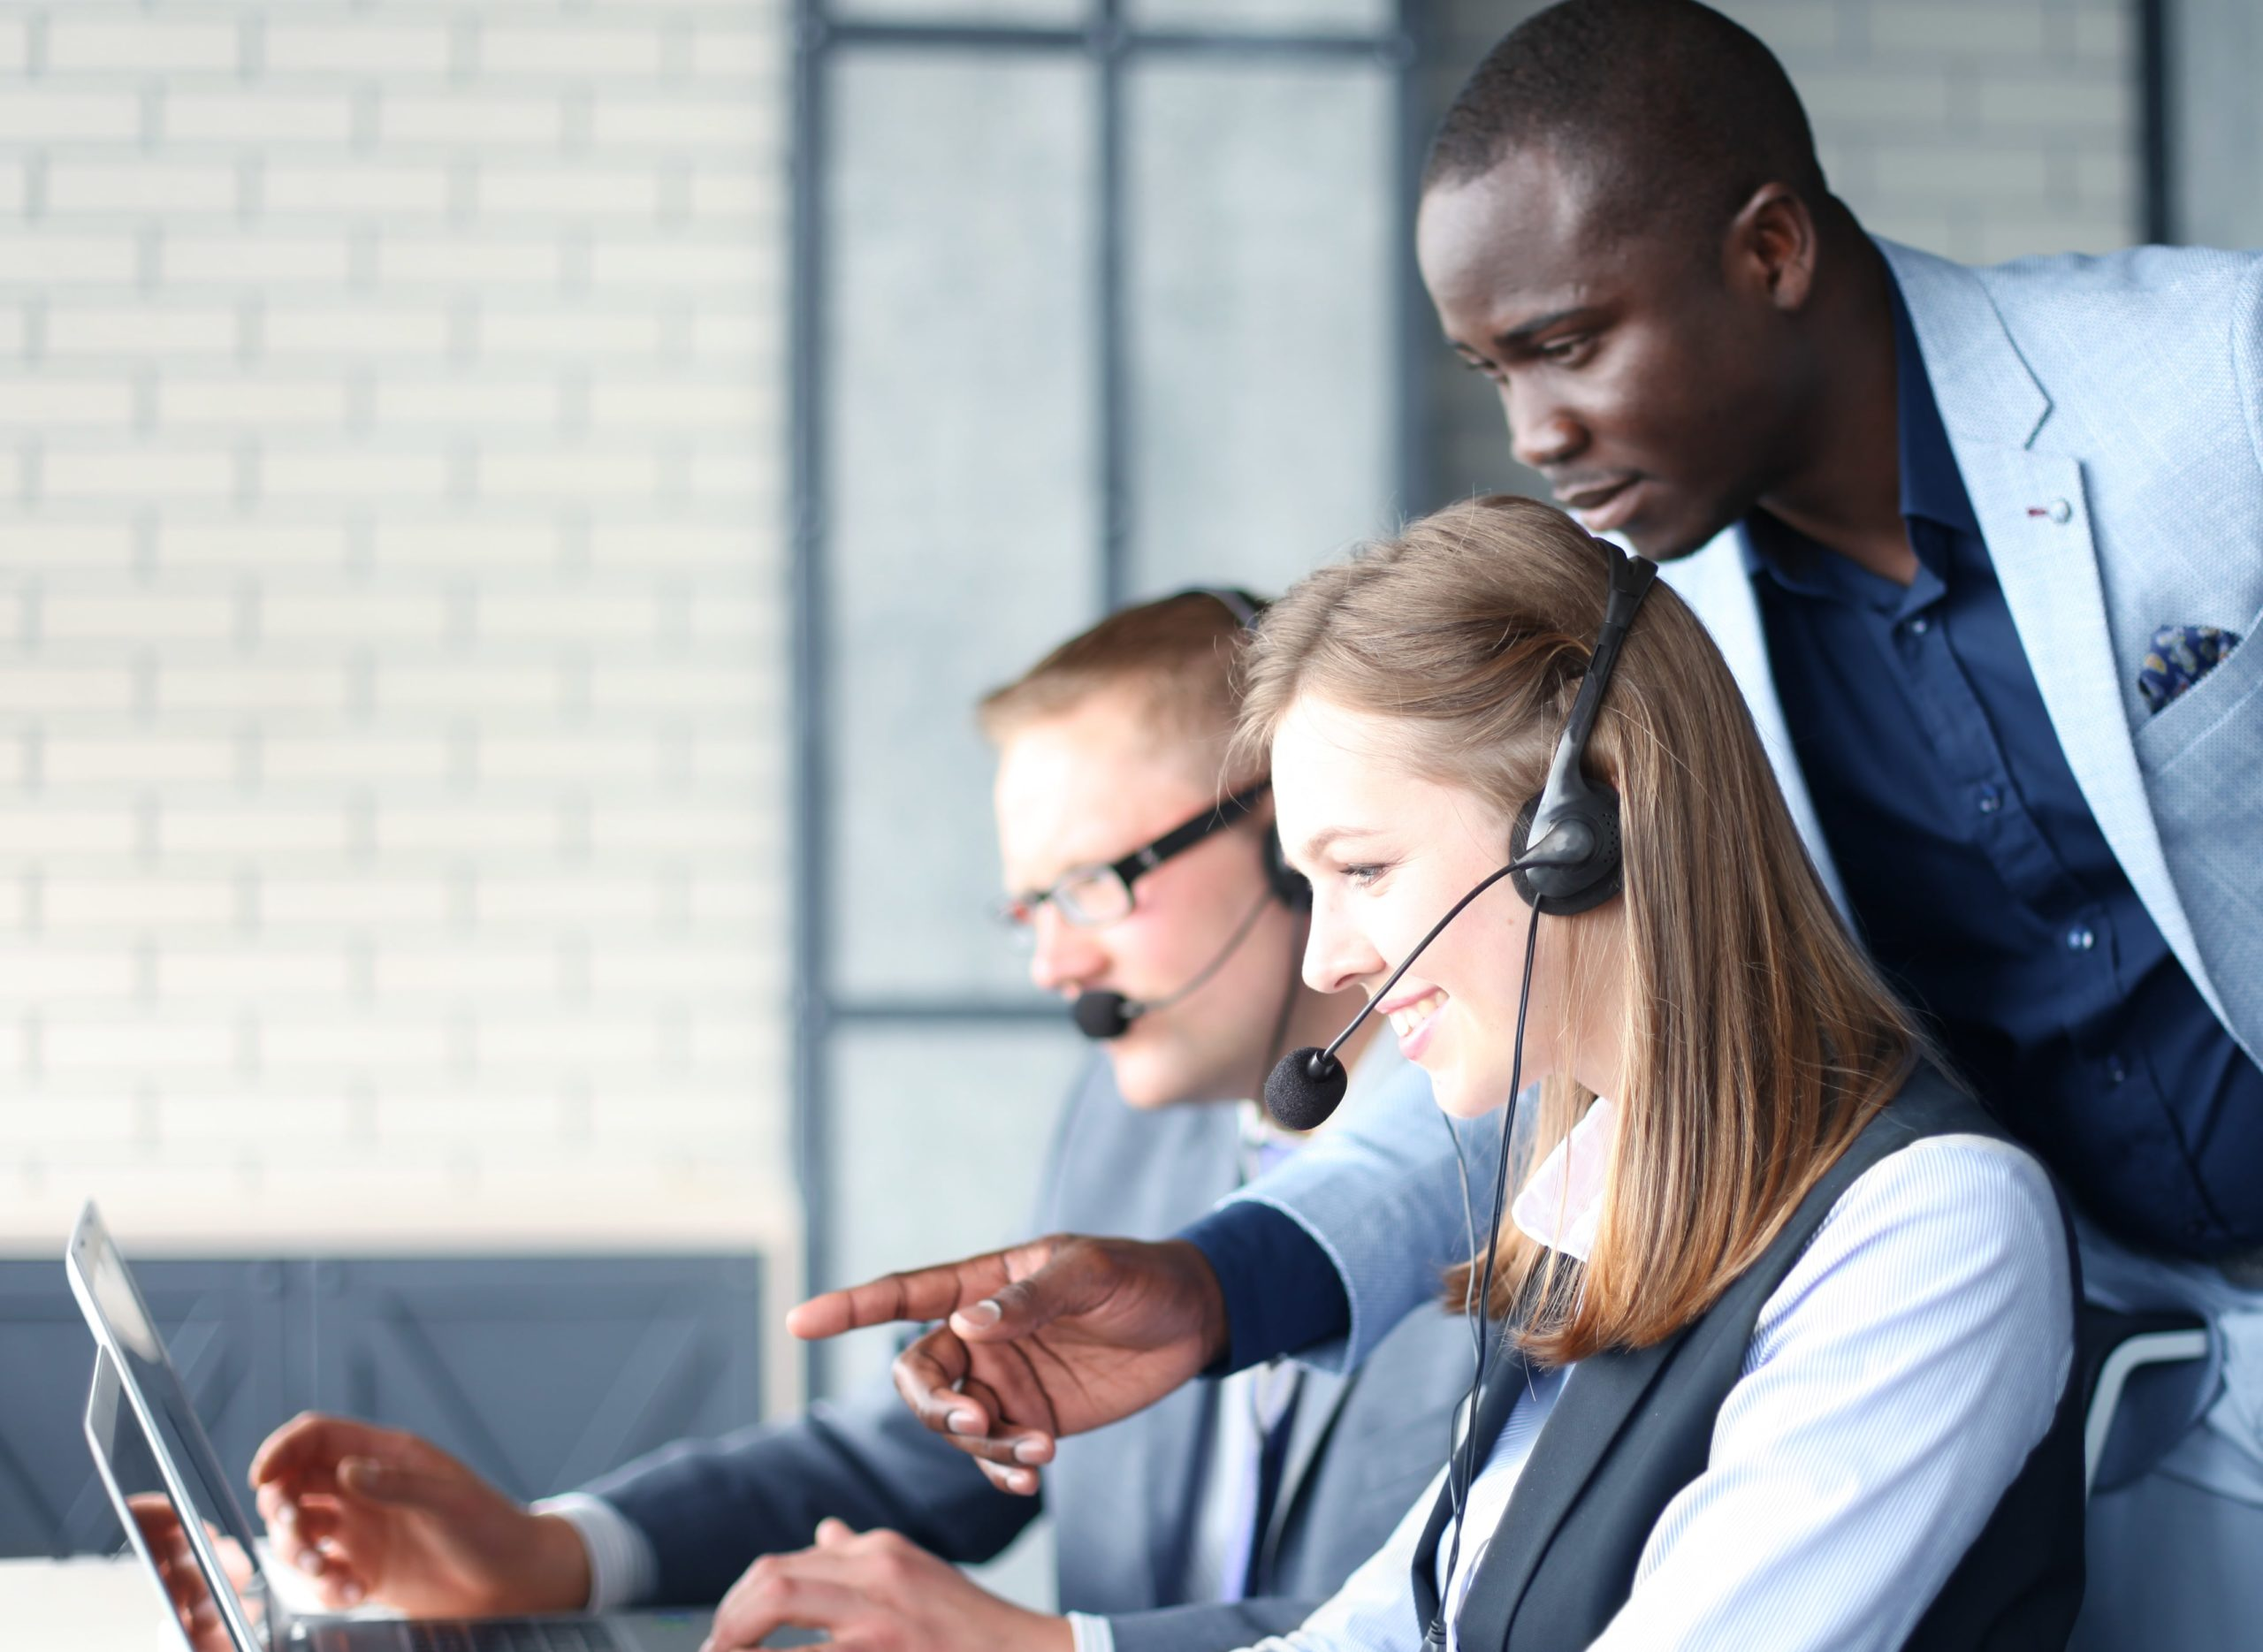 Manager training contact centre agents.